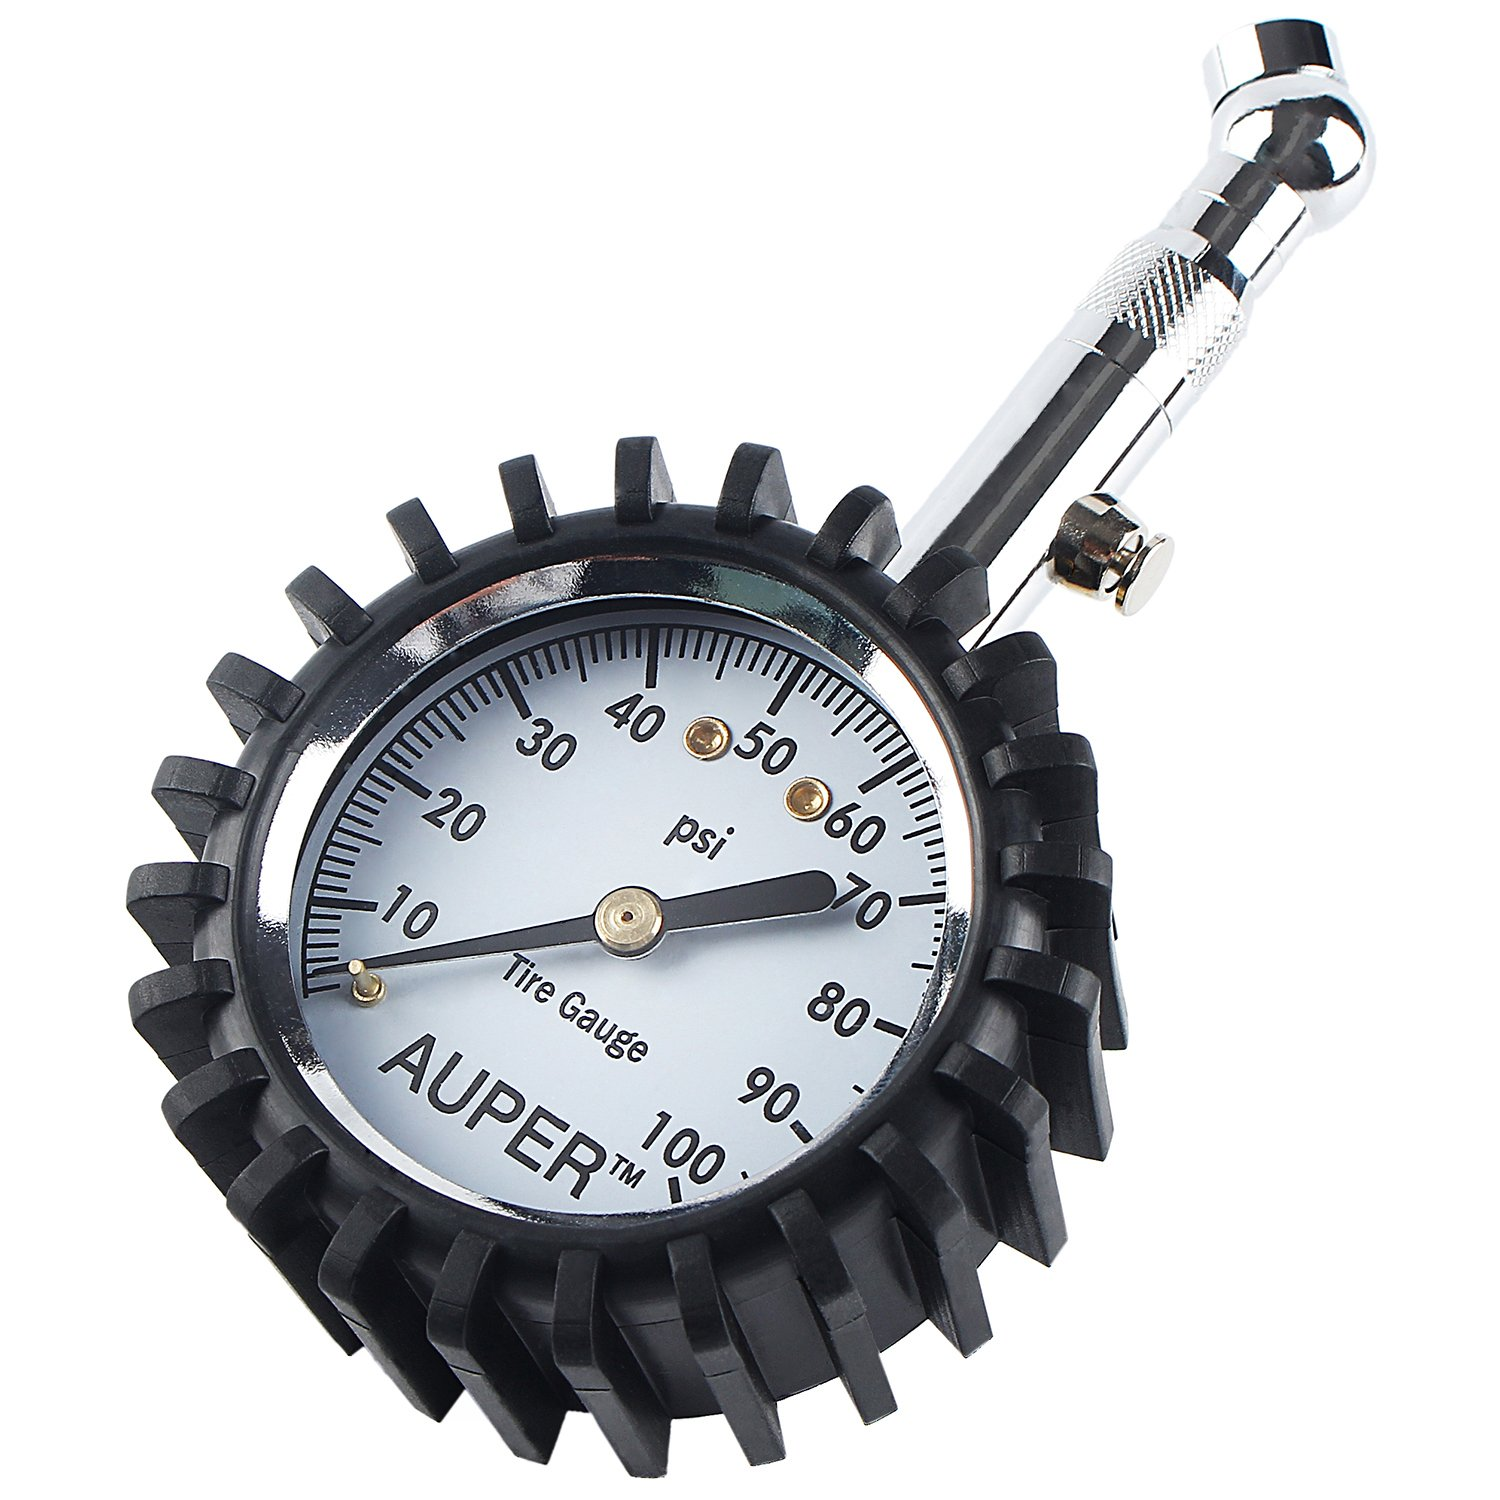 AUPER Tire Pressure Gauge, High Accuracy Tire Gauges Heavy Duty Air Pressure Gauge 100 PSI Pressure Gauge Easy to Use for Car, Truck, Motorcycle, Mountain Bike and More